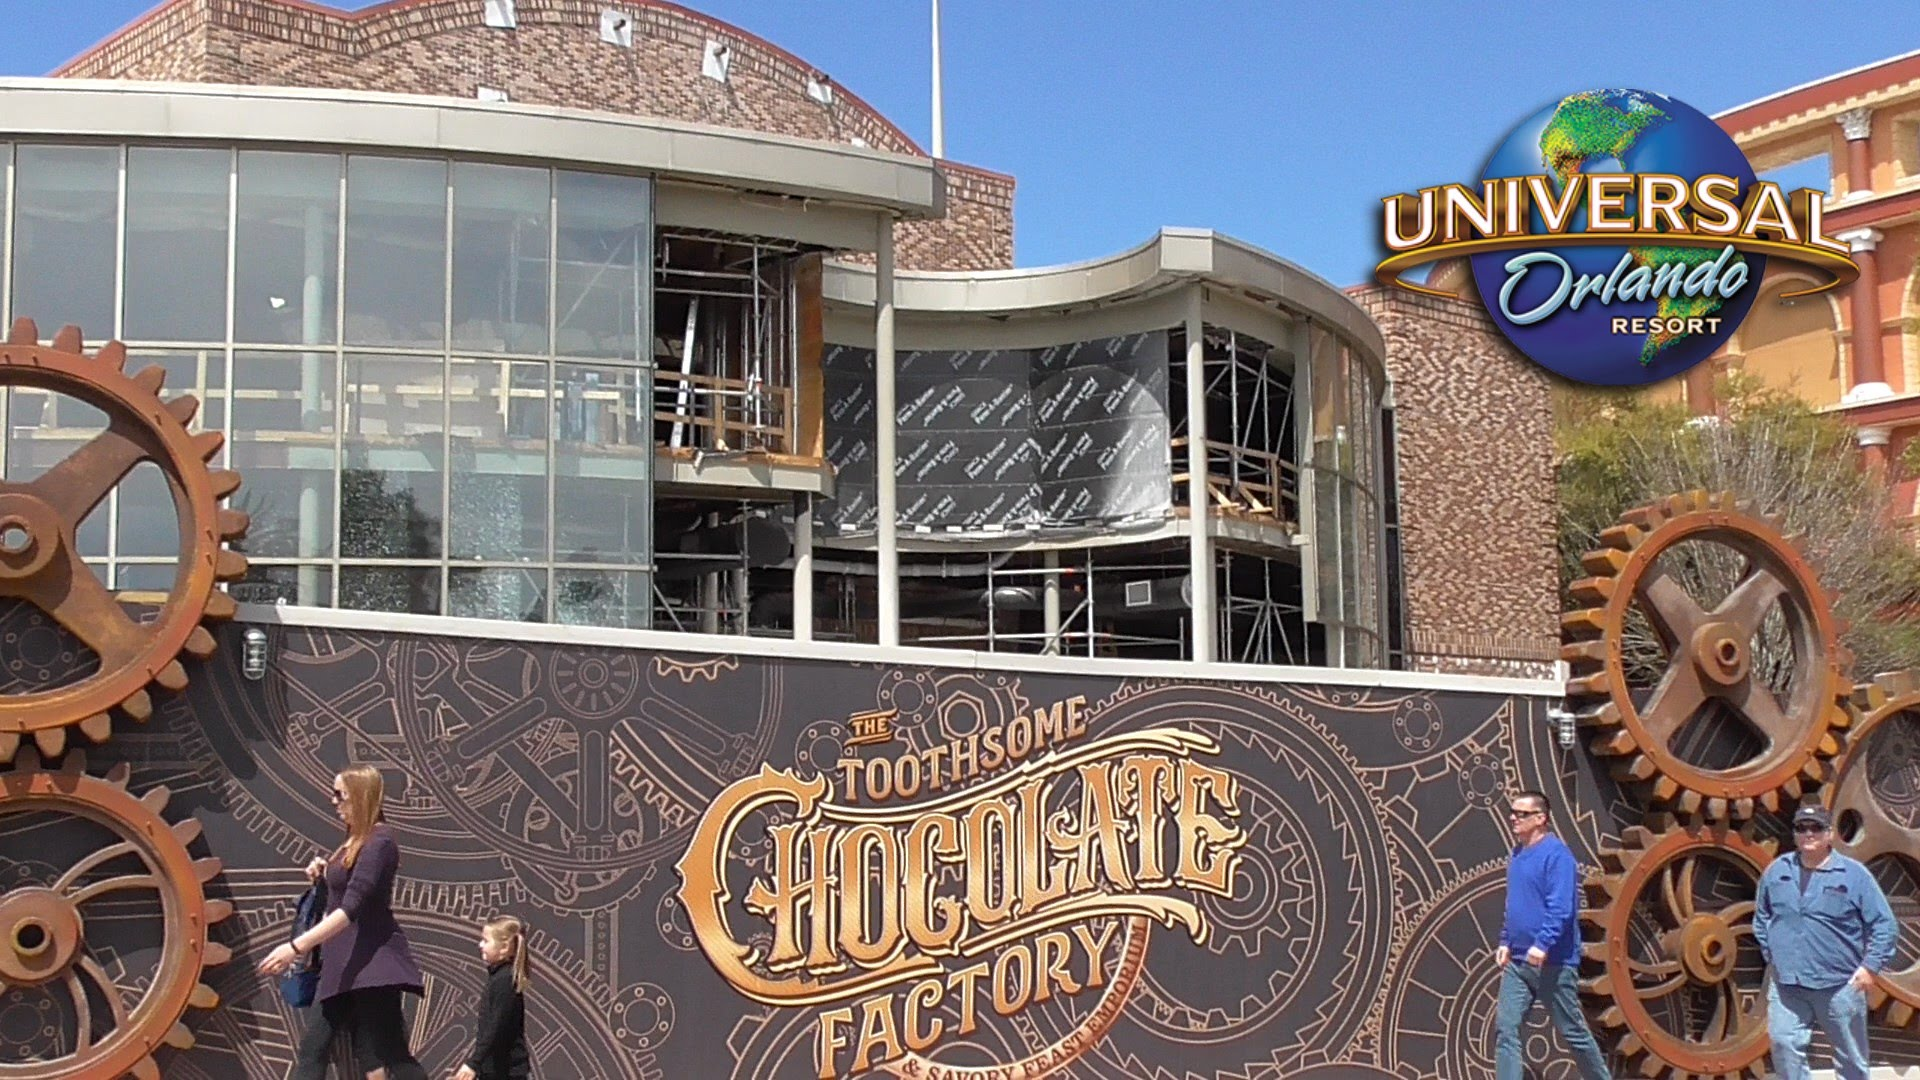 Toothsome Chocolate Emporium & Savory Feast Kitchen Opening September 22nd !